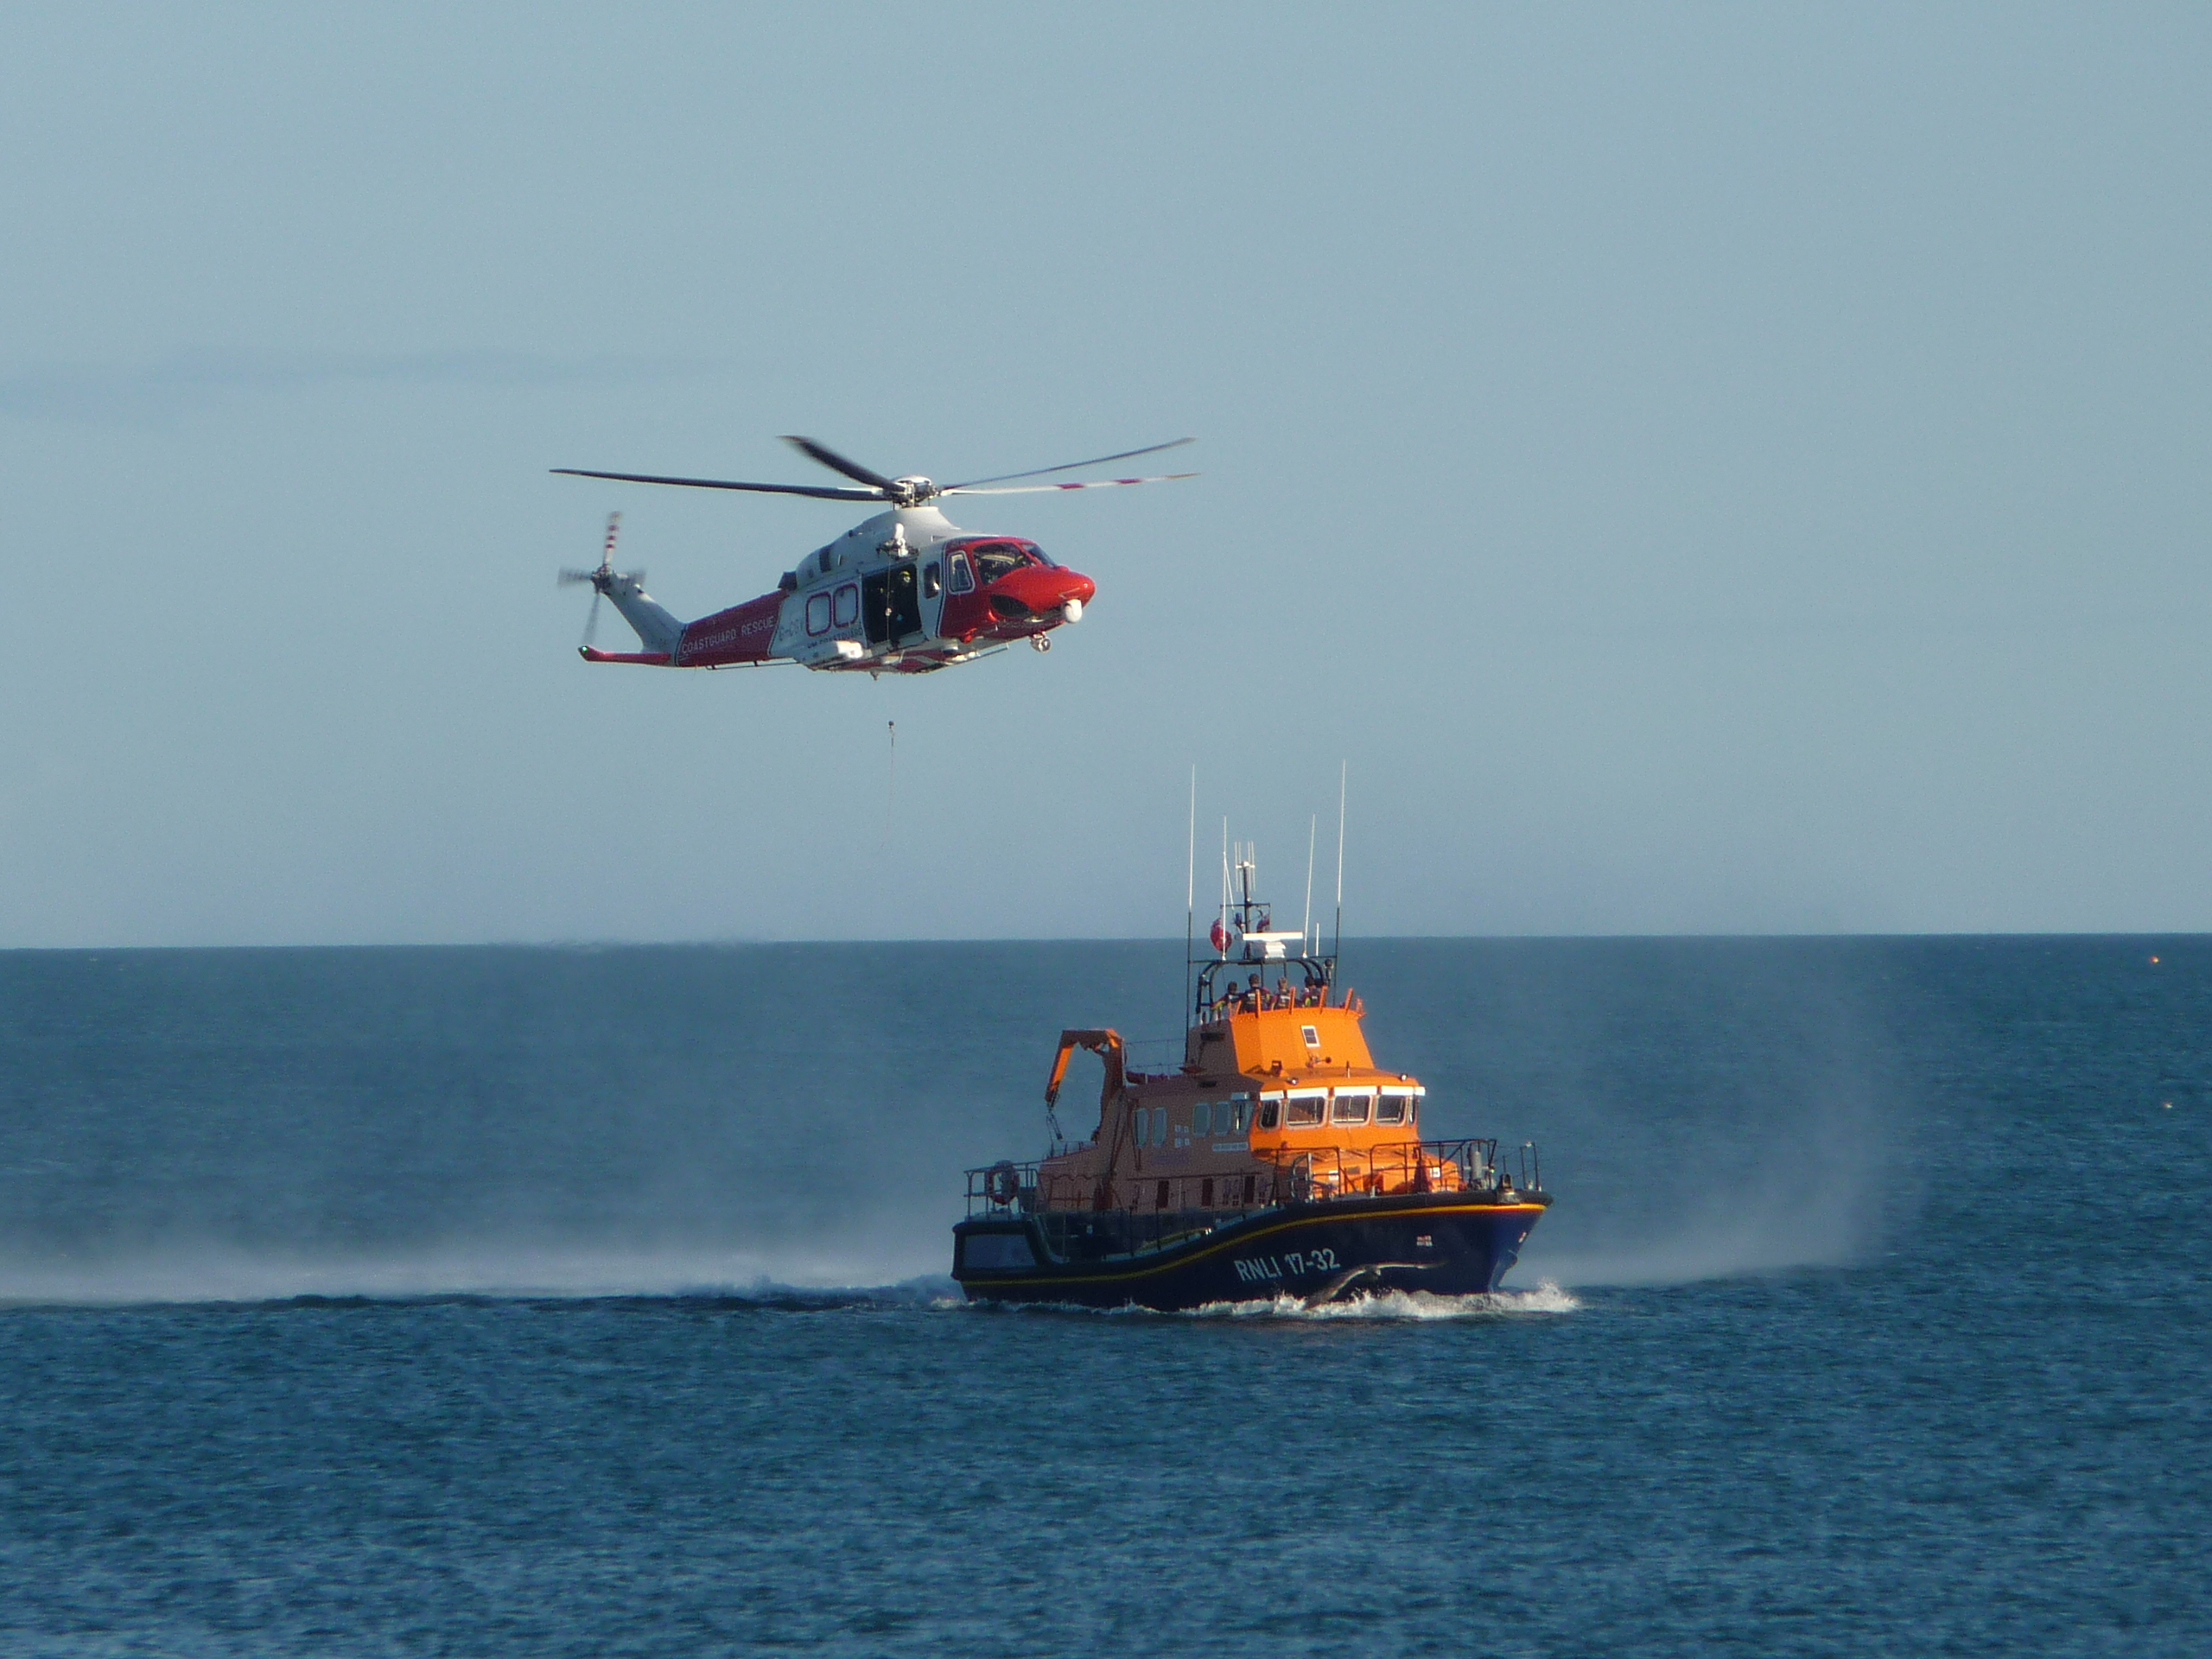 Training exercise between Weymouth lifeboat and Coastguard helicopter